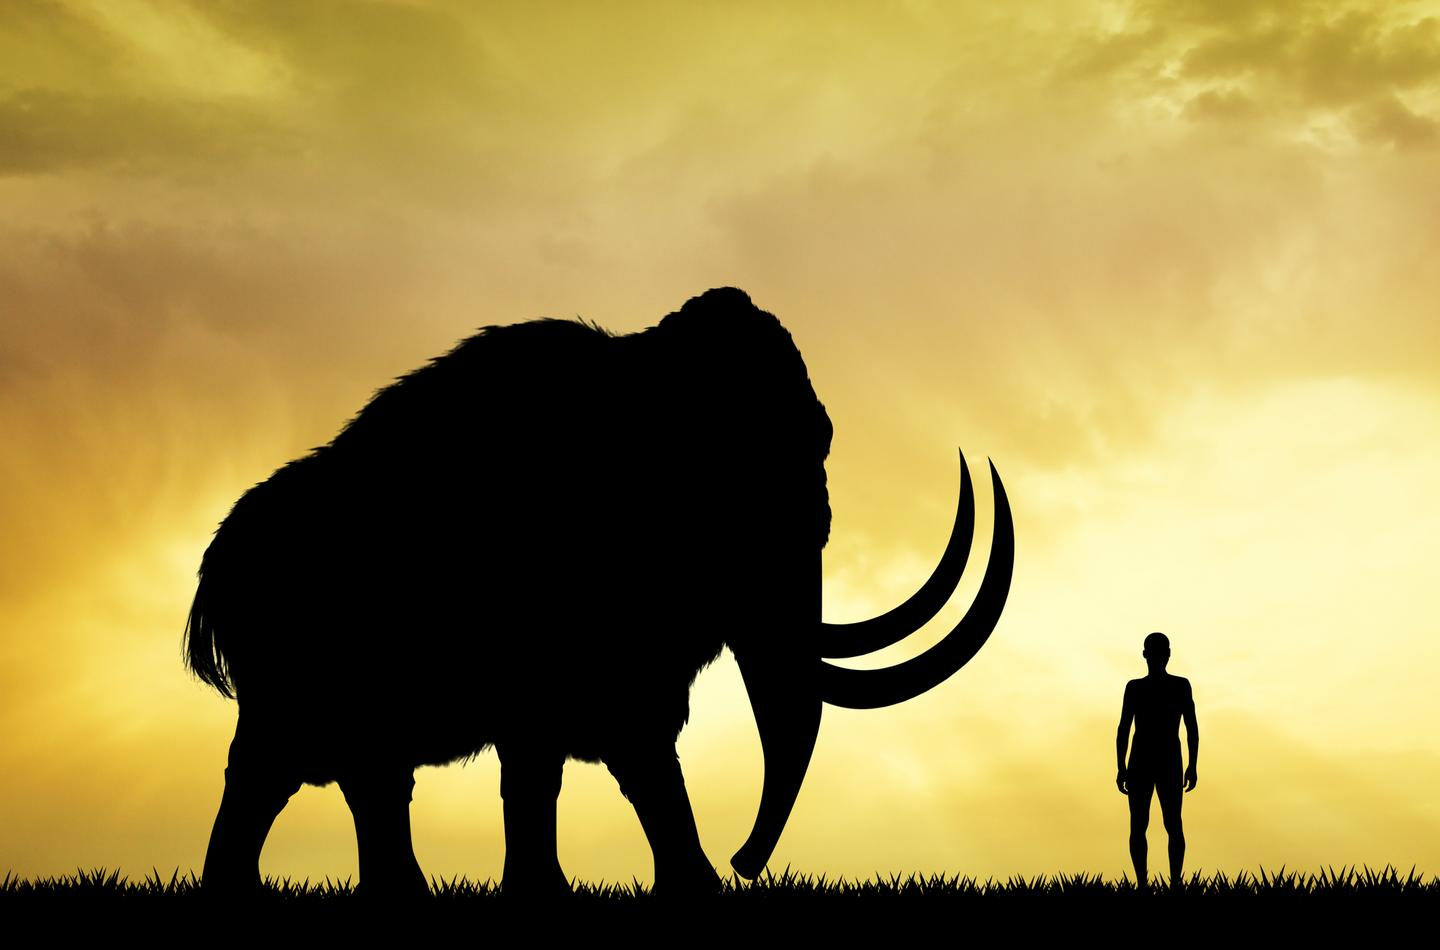 A new startup company called Colossal plans to resurrect the woolly mammoth using CRISPR gene-editing technology